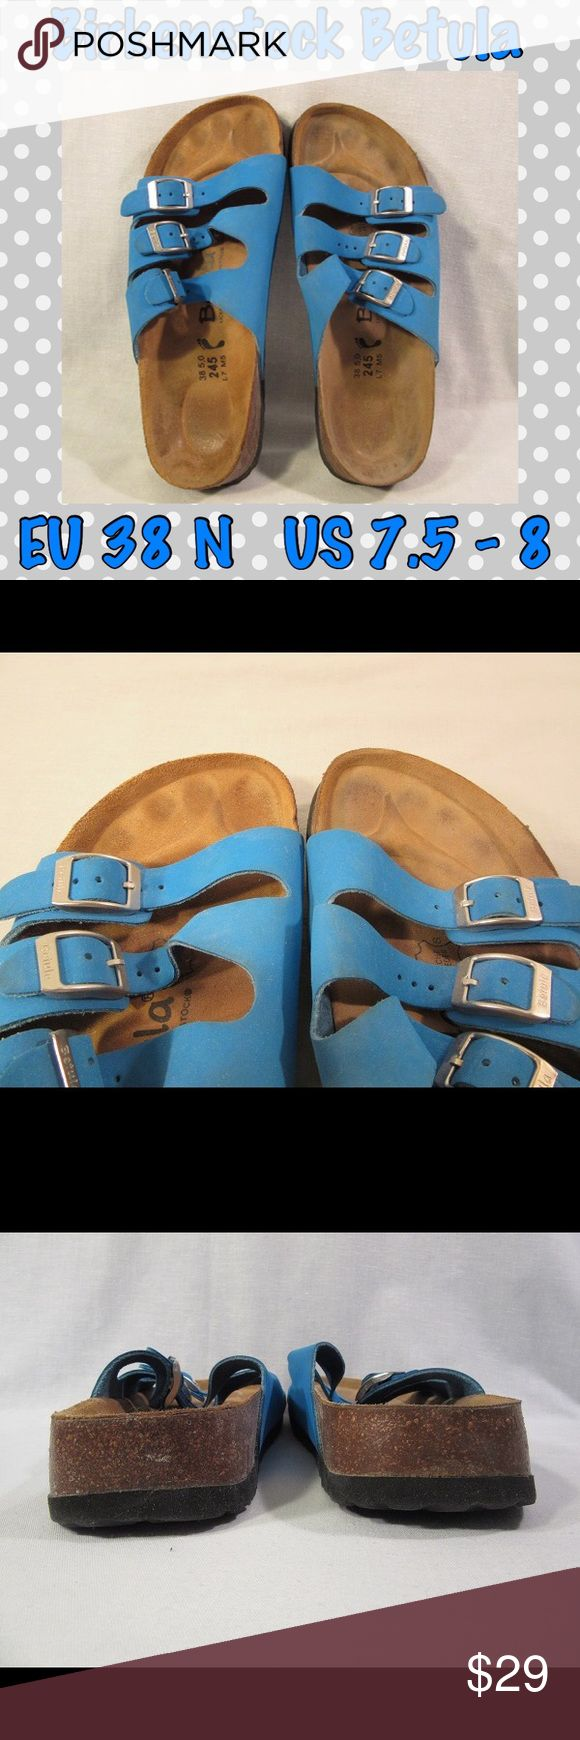 🚫SOLD🚫 BETULA Blue Sandals EU 38 N US 7.5-8 Birkenstock BETULA Adjustable 3 Strap Blue Sandals EU 38 N US 7.5-8 Closed Footprint. These are a vibrant, bright, beachy blue. They feel like a stiffer suede leather, not the really soft suede like some 3-straps. They might be Burki-flor. All 3 straps are adjustable & have silver-tone buckles. Only worn a few times, indoors at work & to and from my car. They are too narrow for me. Some staining on footbed. Heels & big toes are just a little…